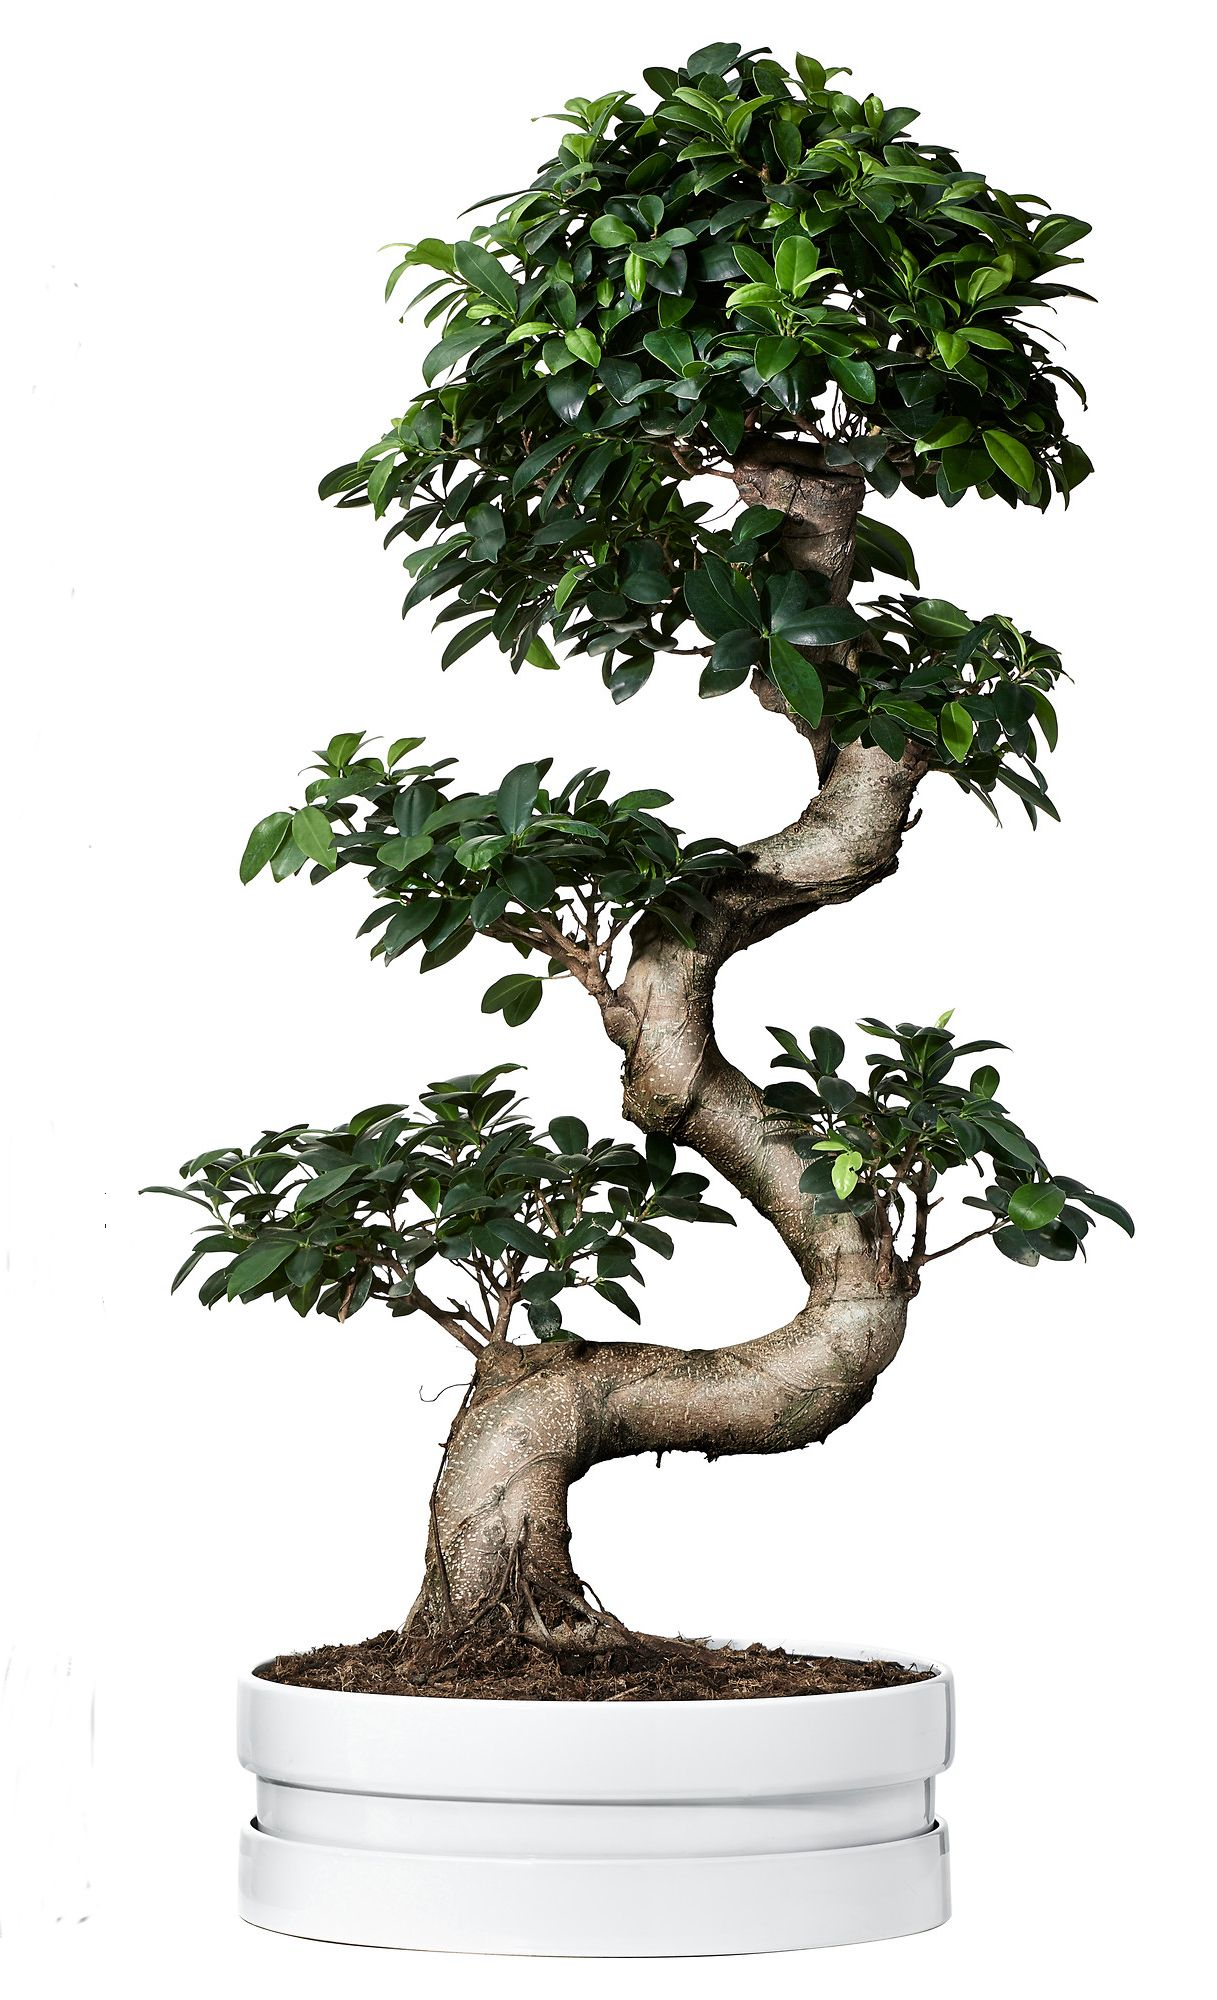 Bonsai Ficus Microcarpa Ginseng Pflege Ficus Microcarpa Ginseng Potted Plant With Pot Bonsai